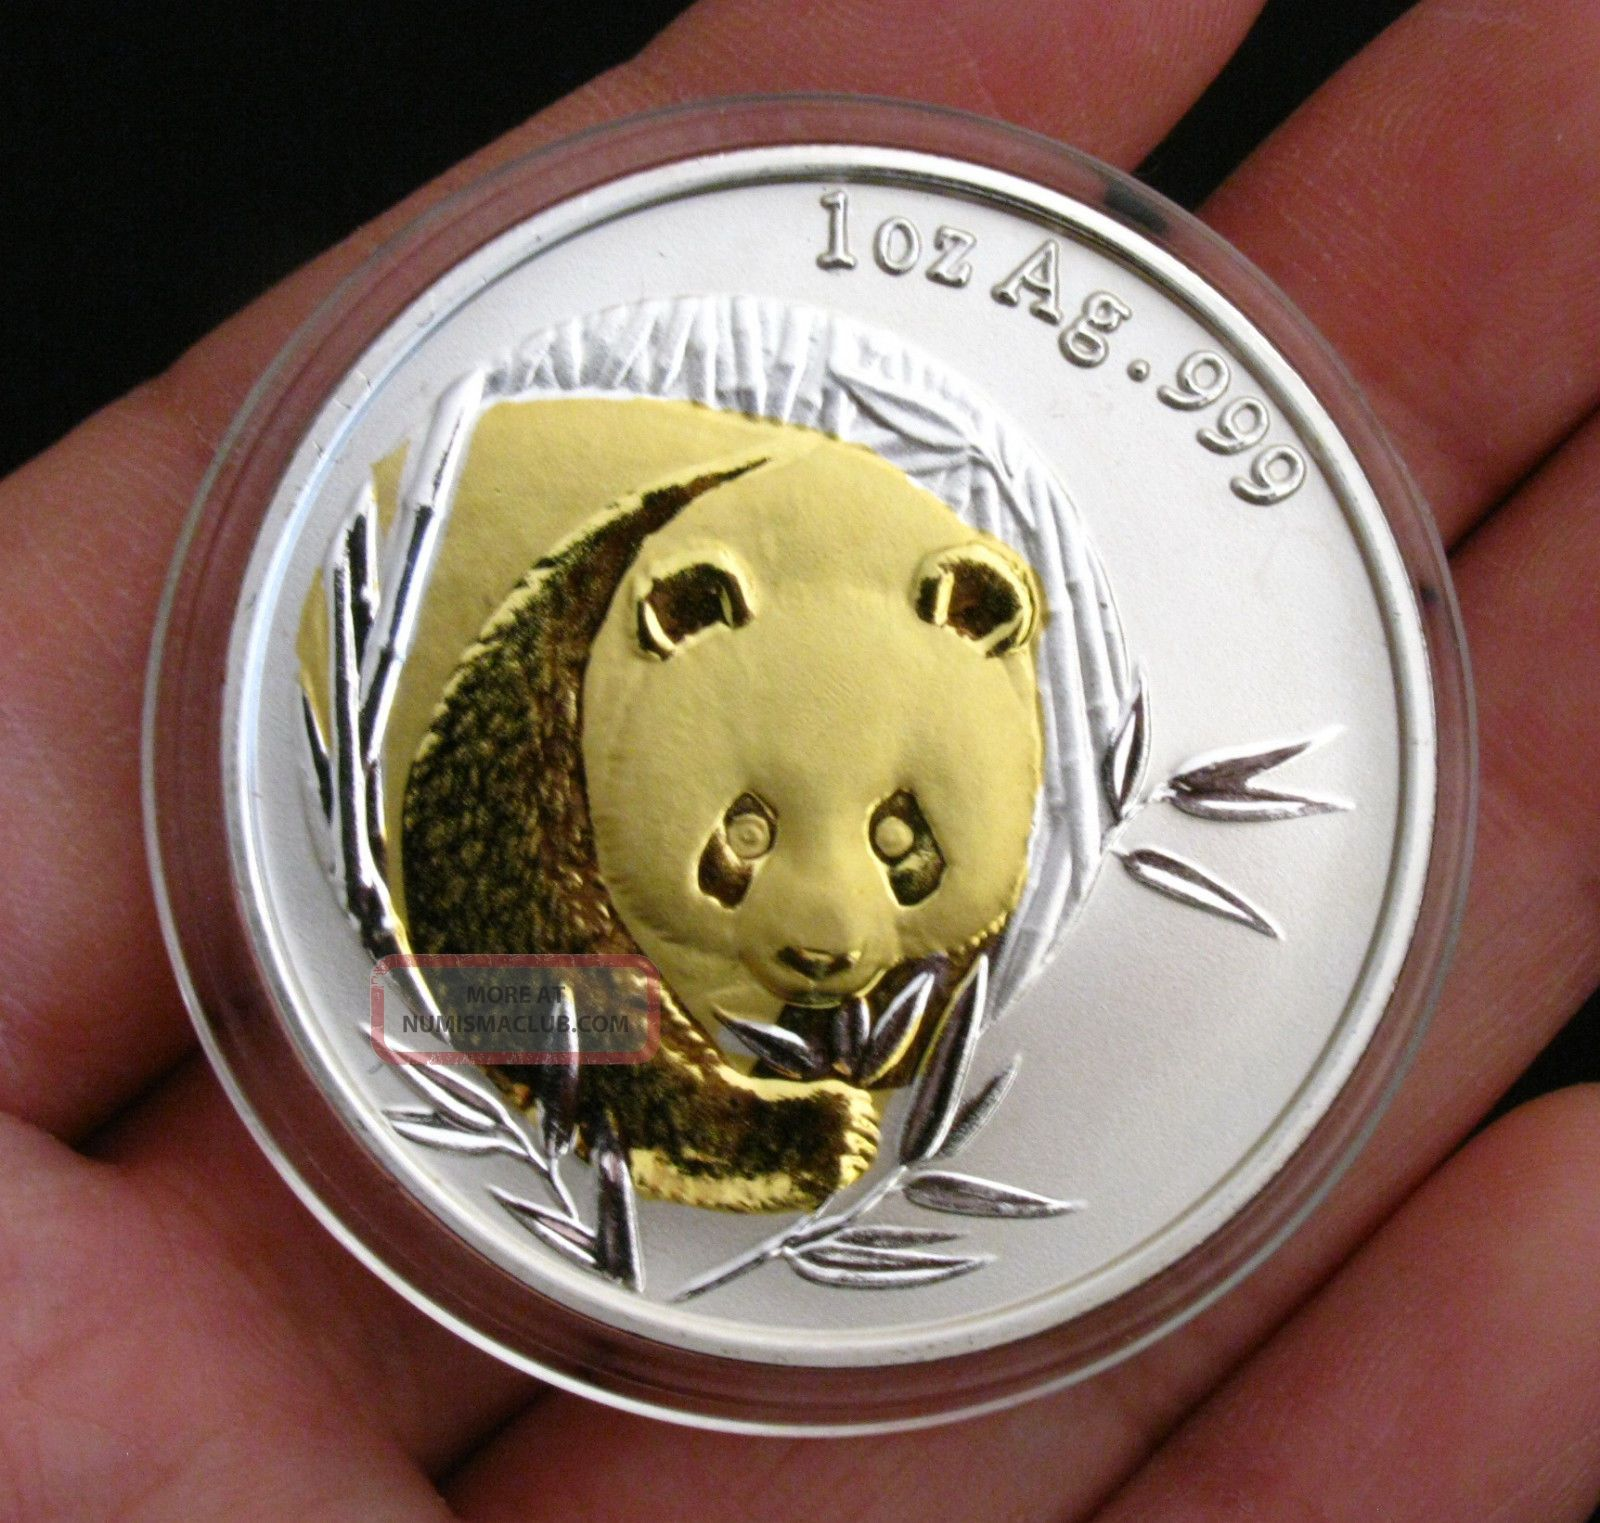 2003 Chinese Giant Panda 24k Gold & Silver Commemorative Medal Bimetallic Coin Coins: World photo